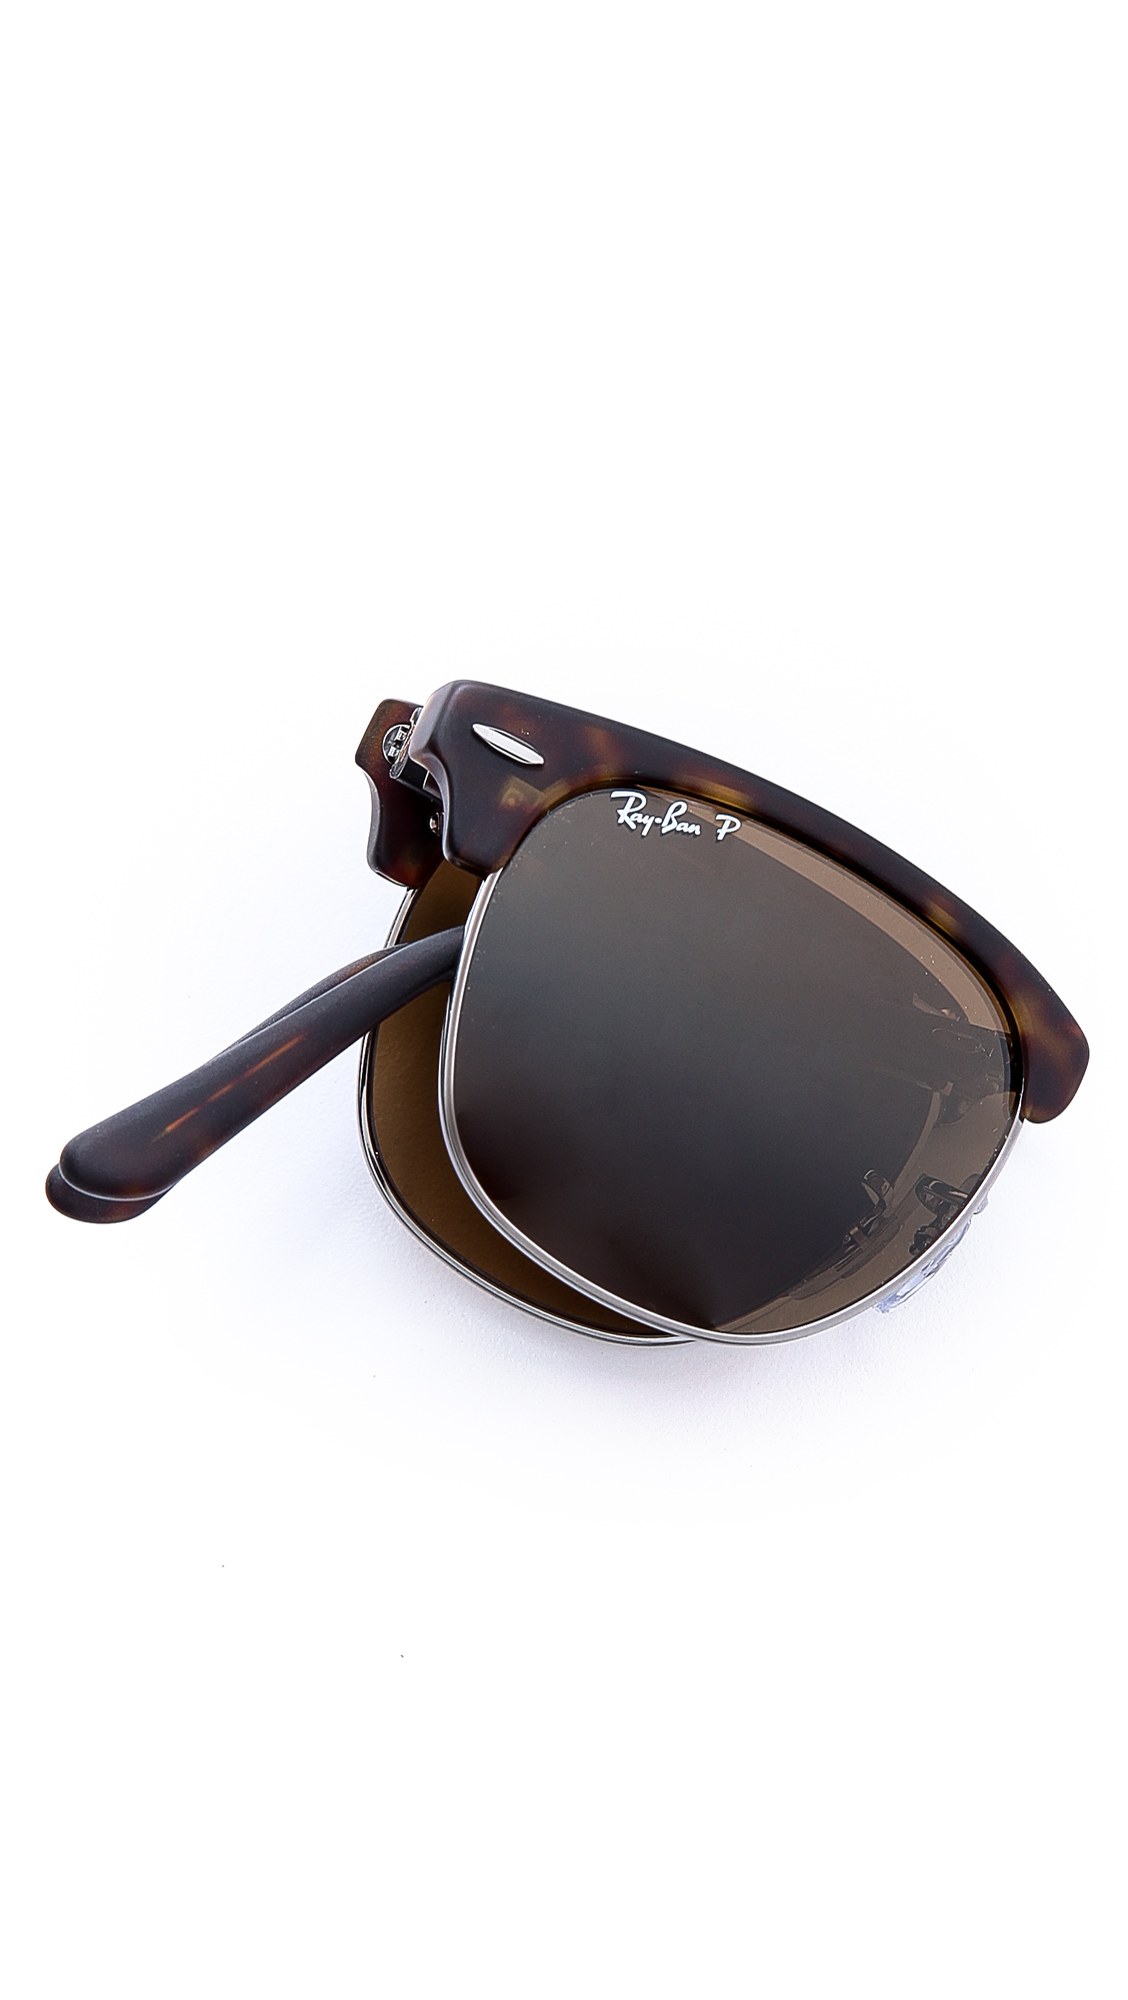 129cf62747 7010b a545f  sale lyst ray ban clubmaster folding polarized sunglasses in  brown for men 40dc3 57b20